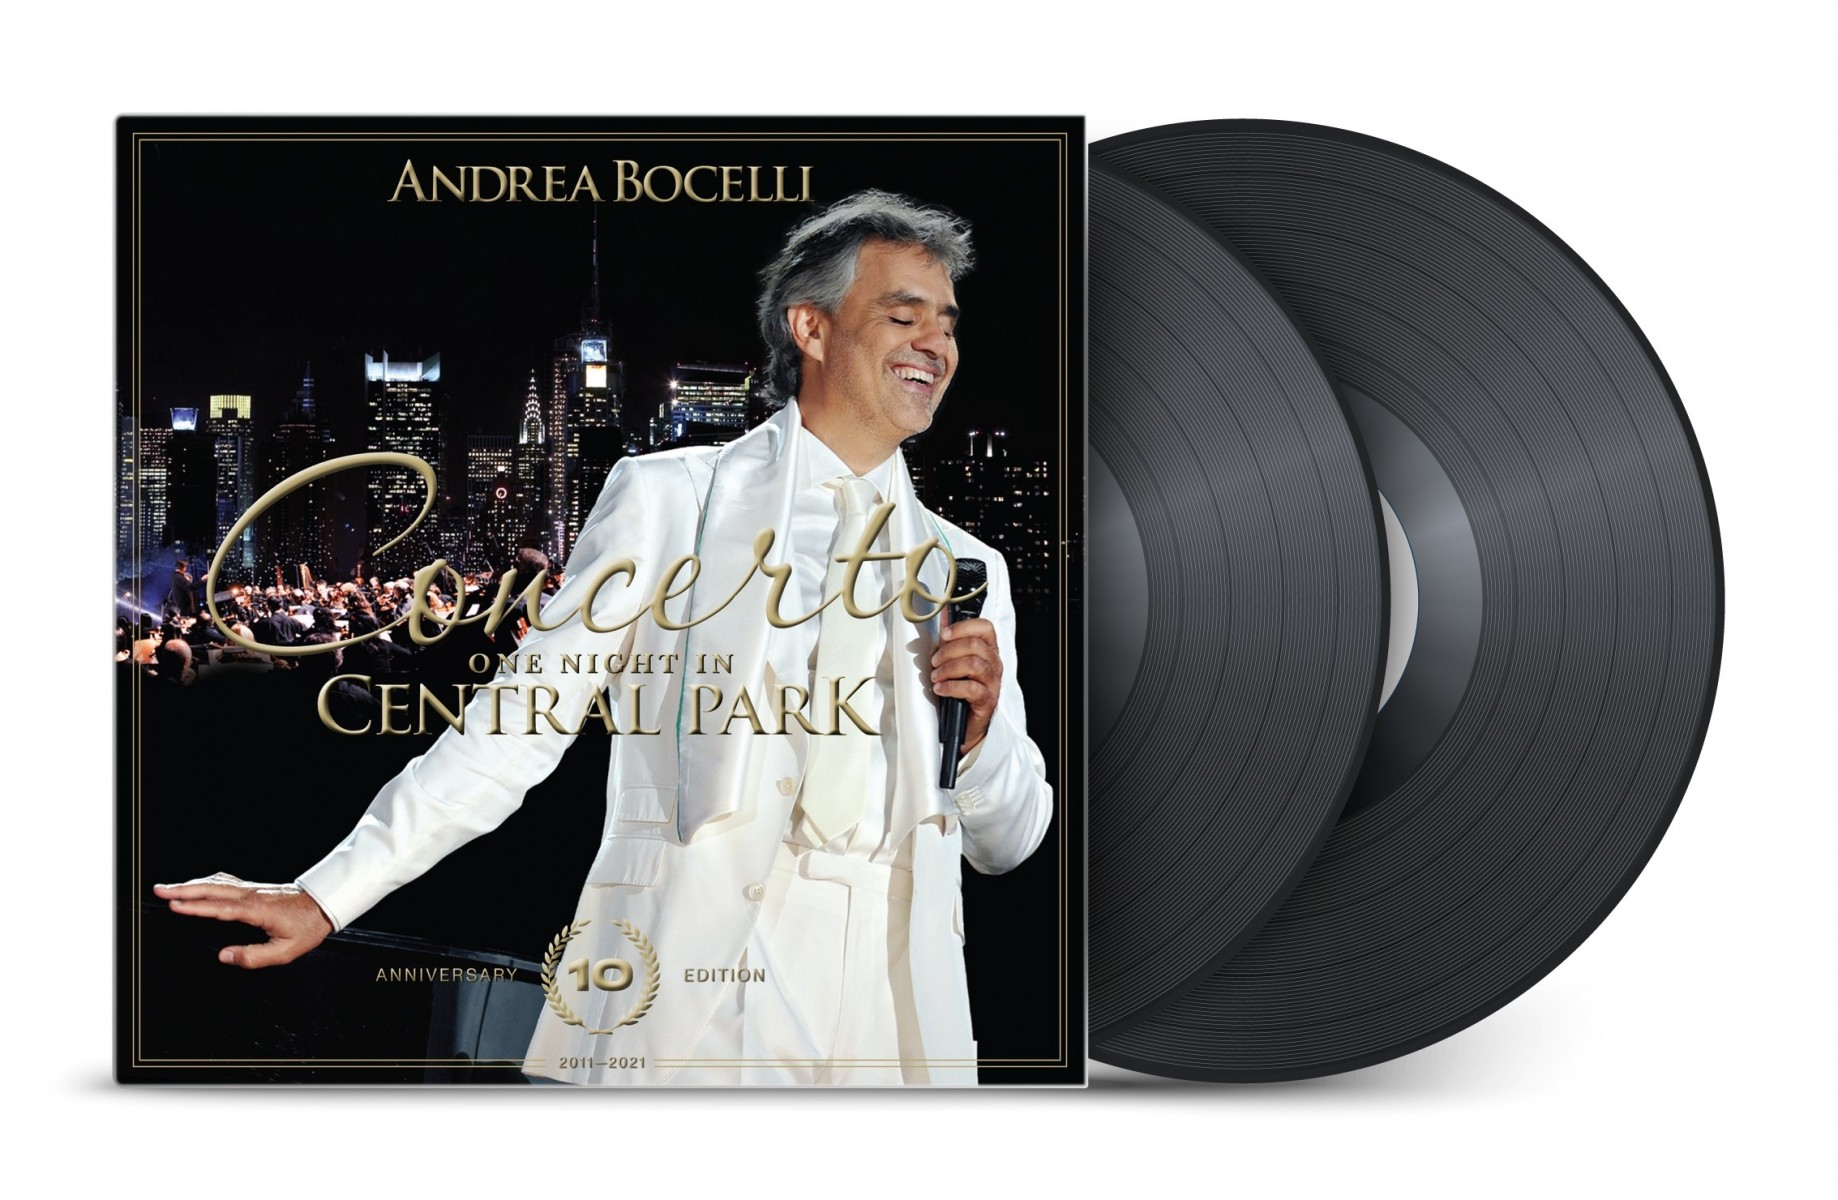 Andrea Bocelli - Concerto: One Night in Central Park - 10th Anniversary (Live at Central Park, New York / 2011) VINYL - 060254719365